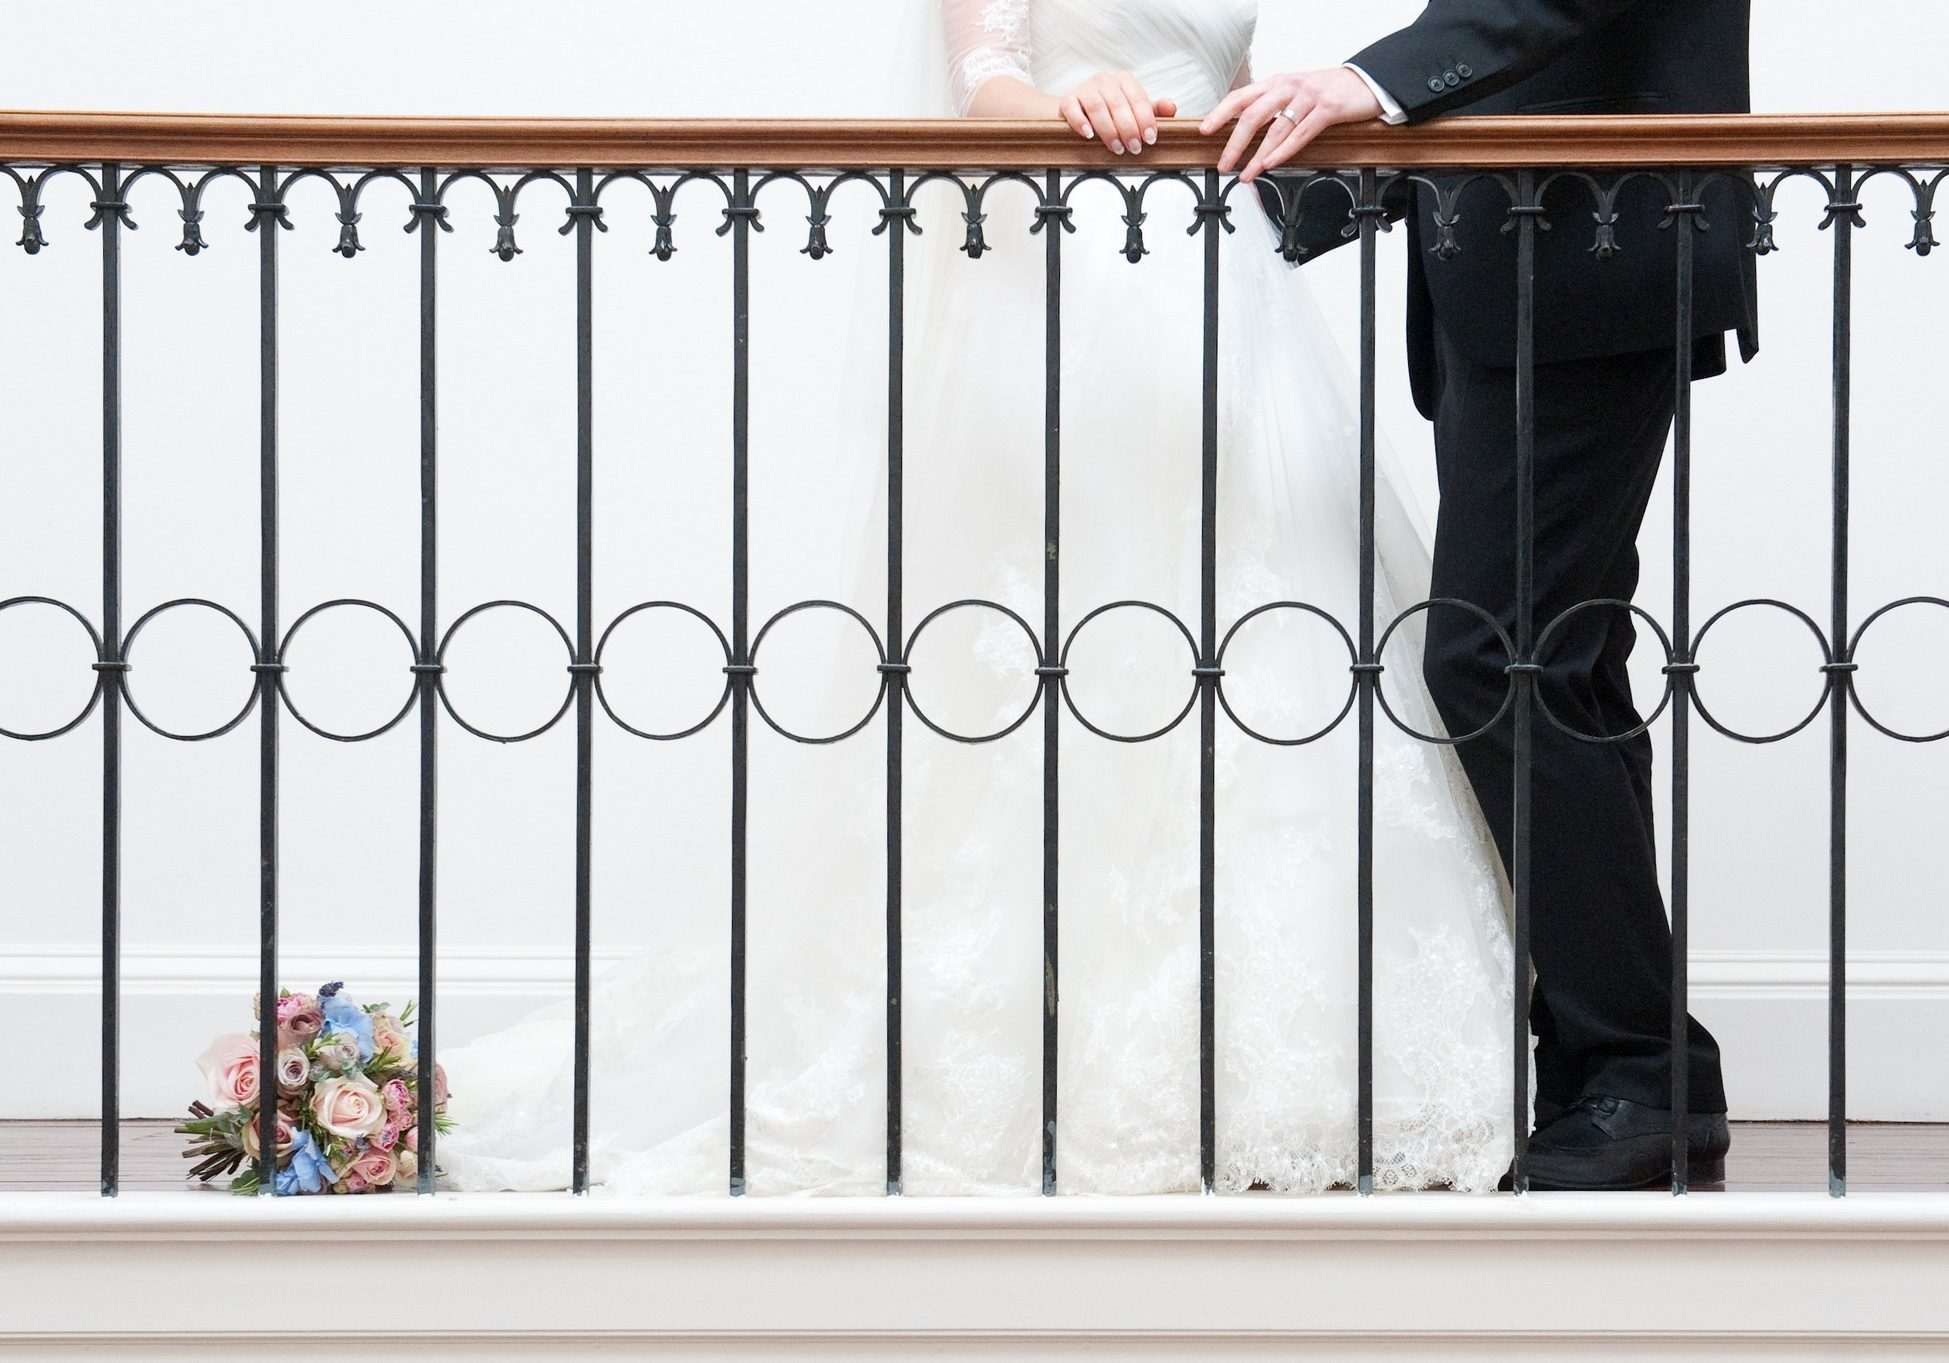 Balcony Bride and Groom - By Jackie Photography - www.byjackie.co.uk - @babies_by_jackie